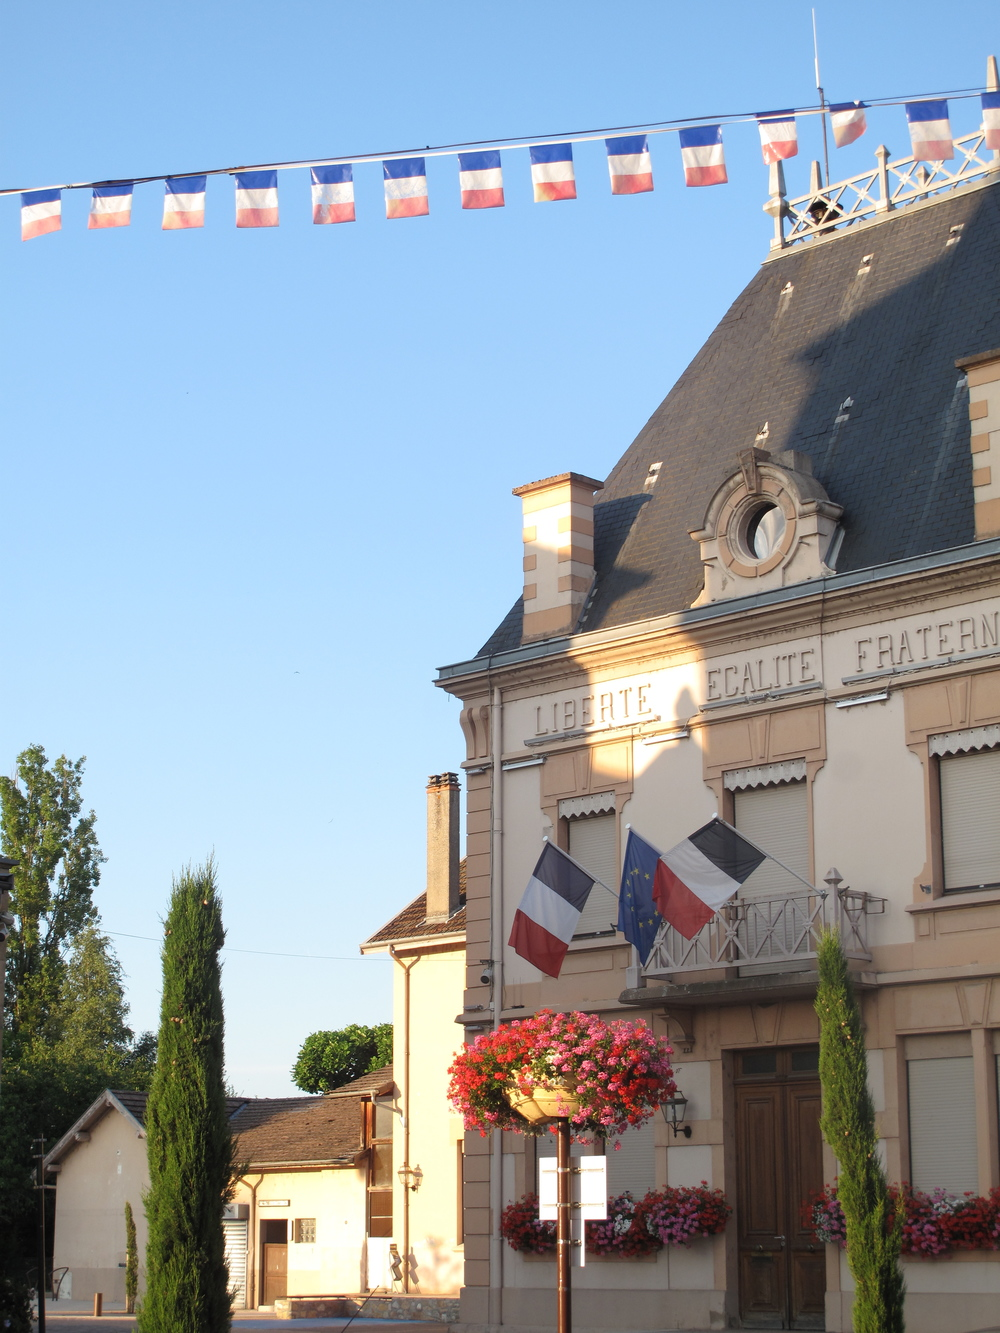 Flags and building with a sign: Liberte Egalite Fraternite, in  France